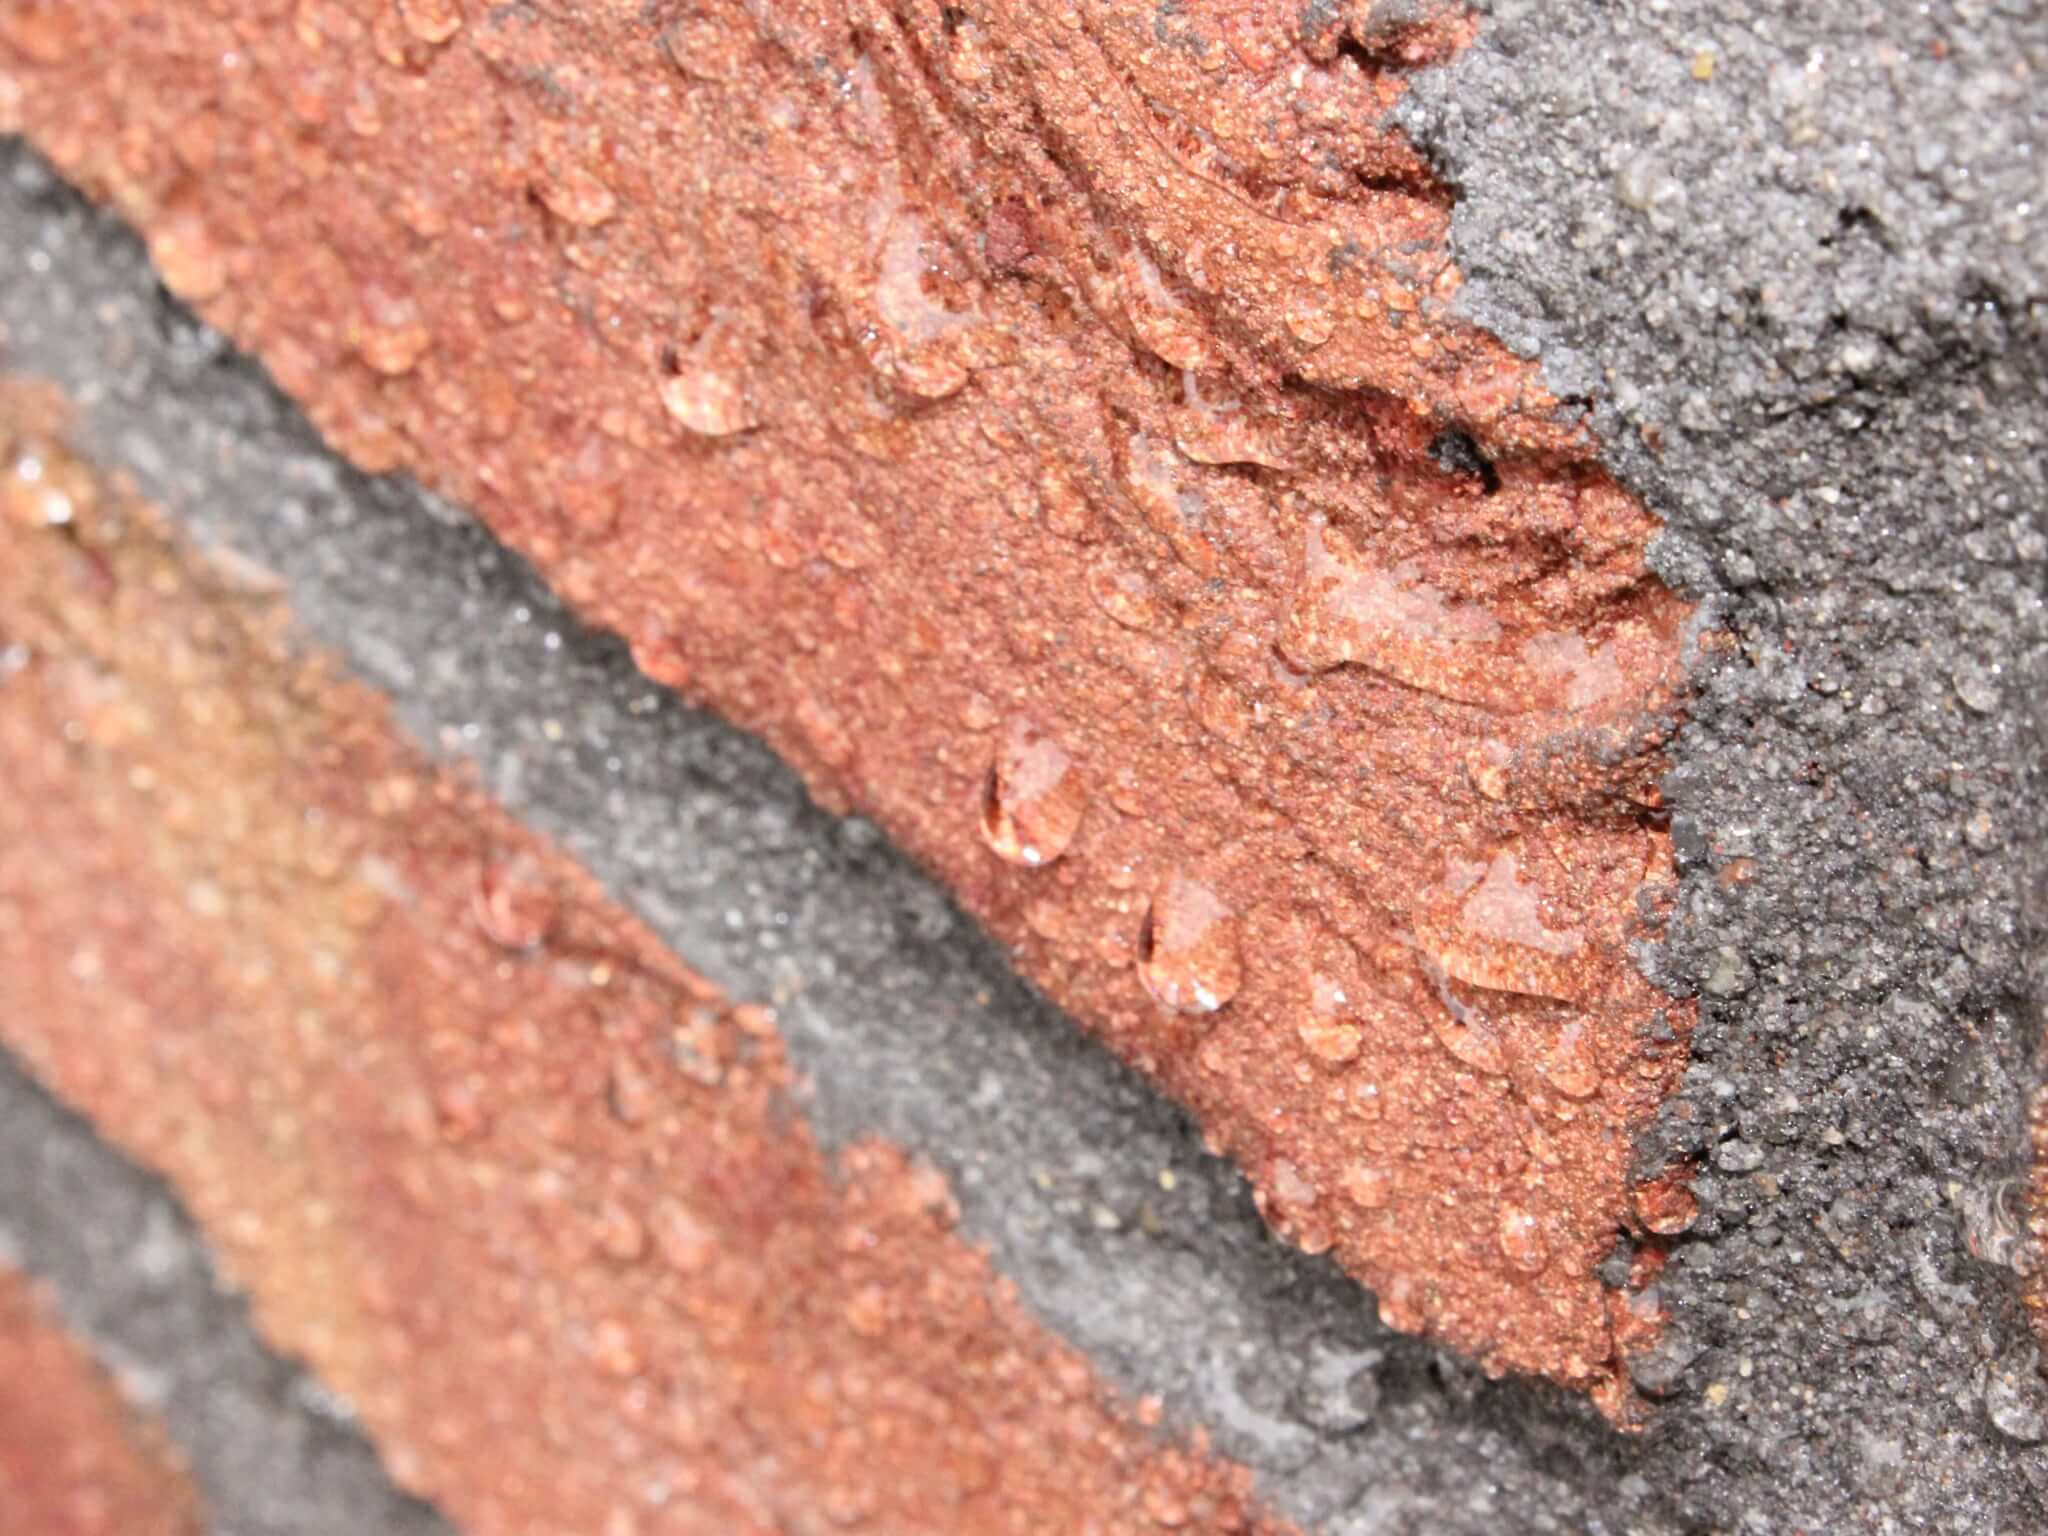 beading effect on masonry